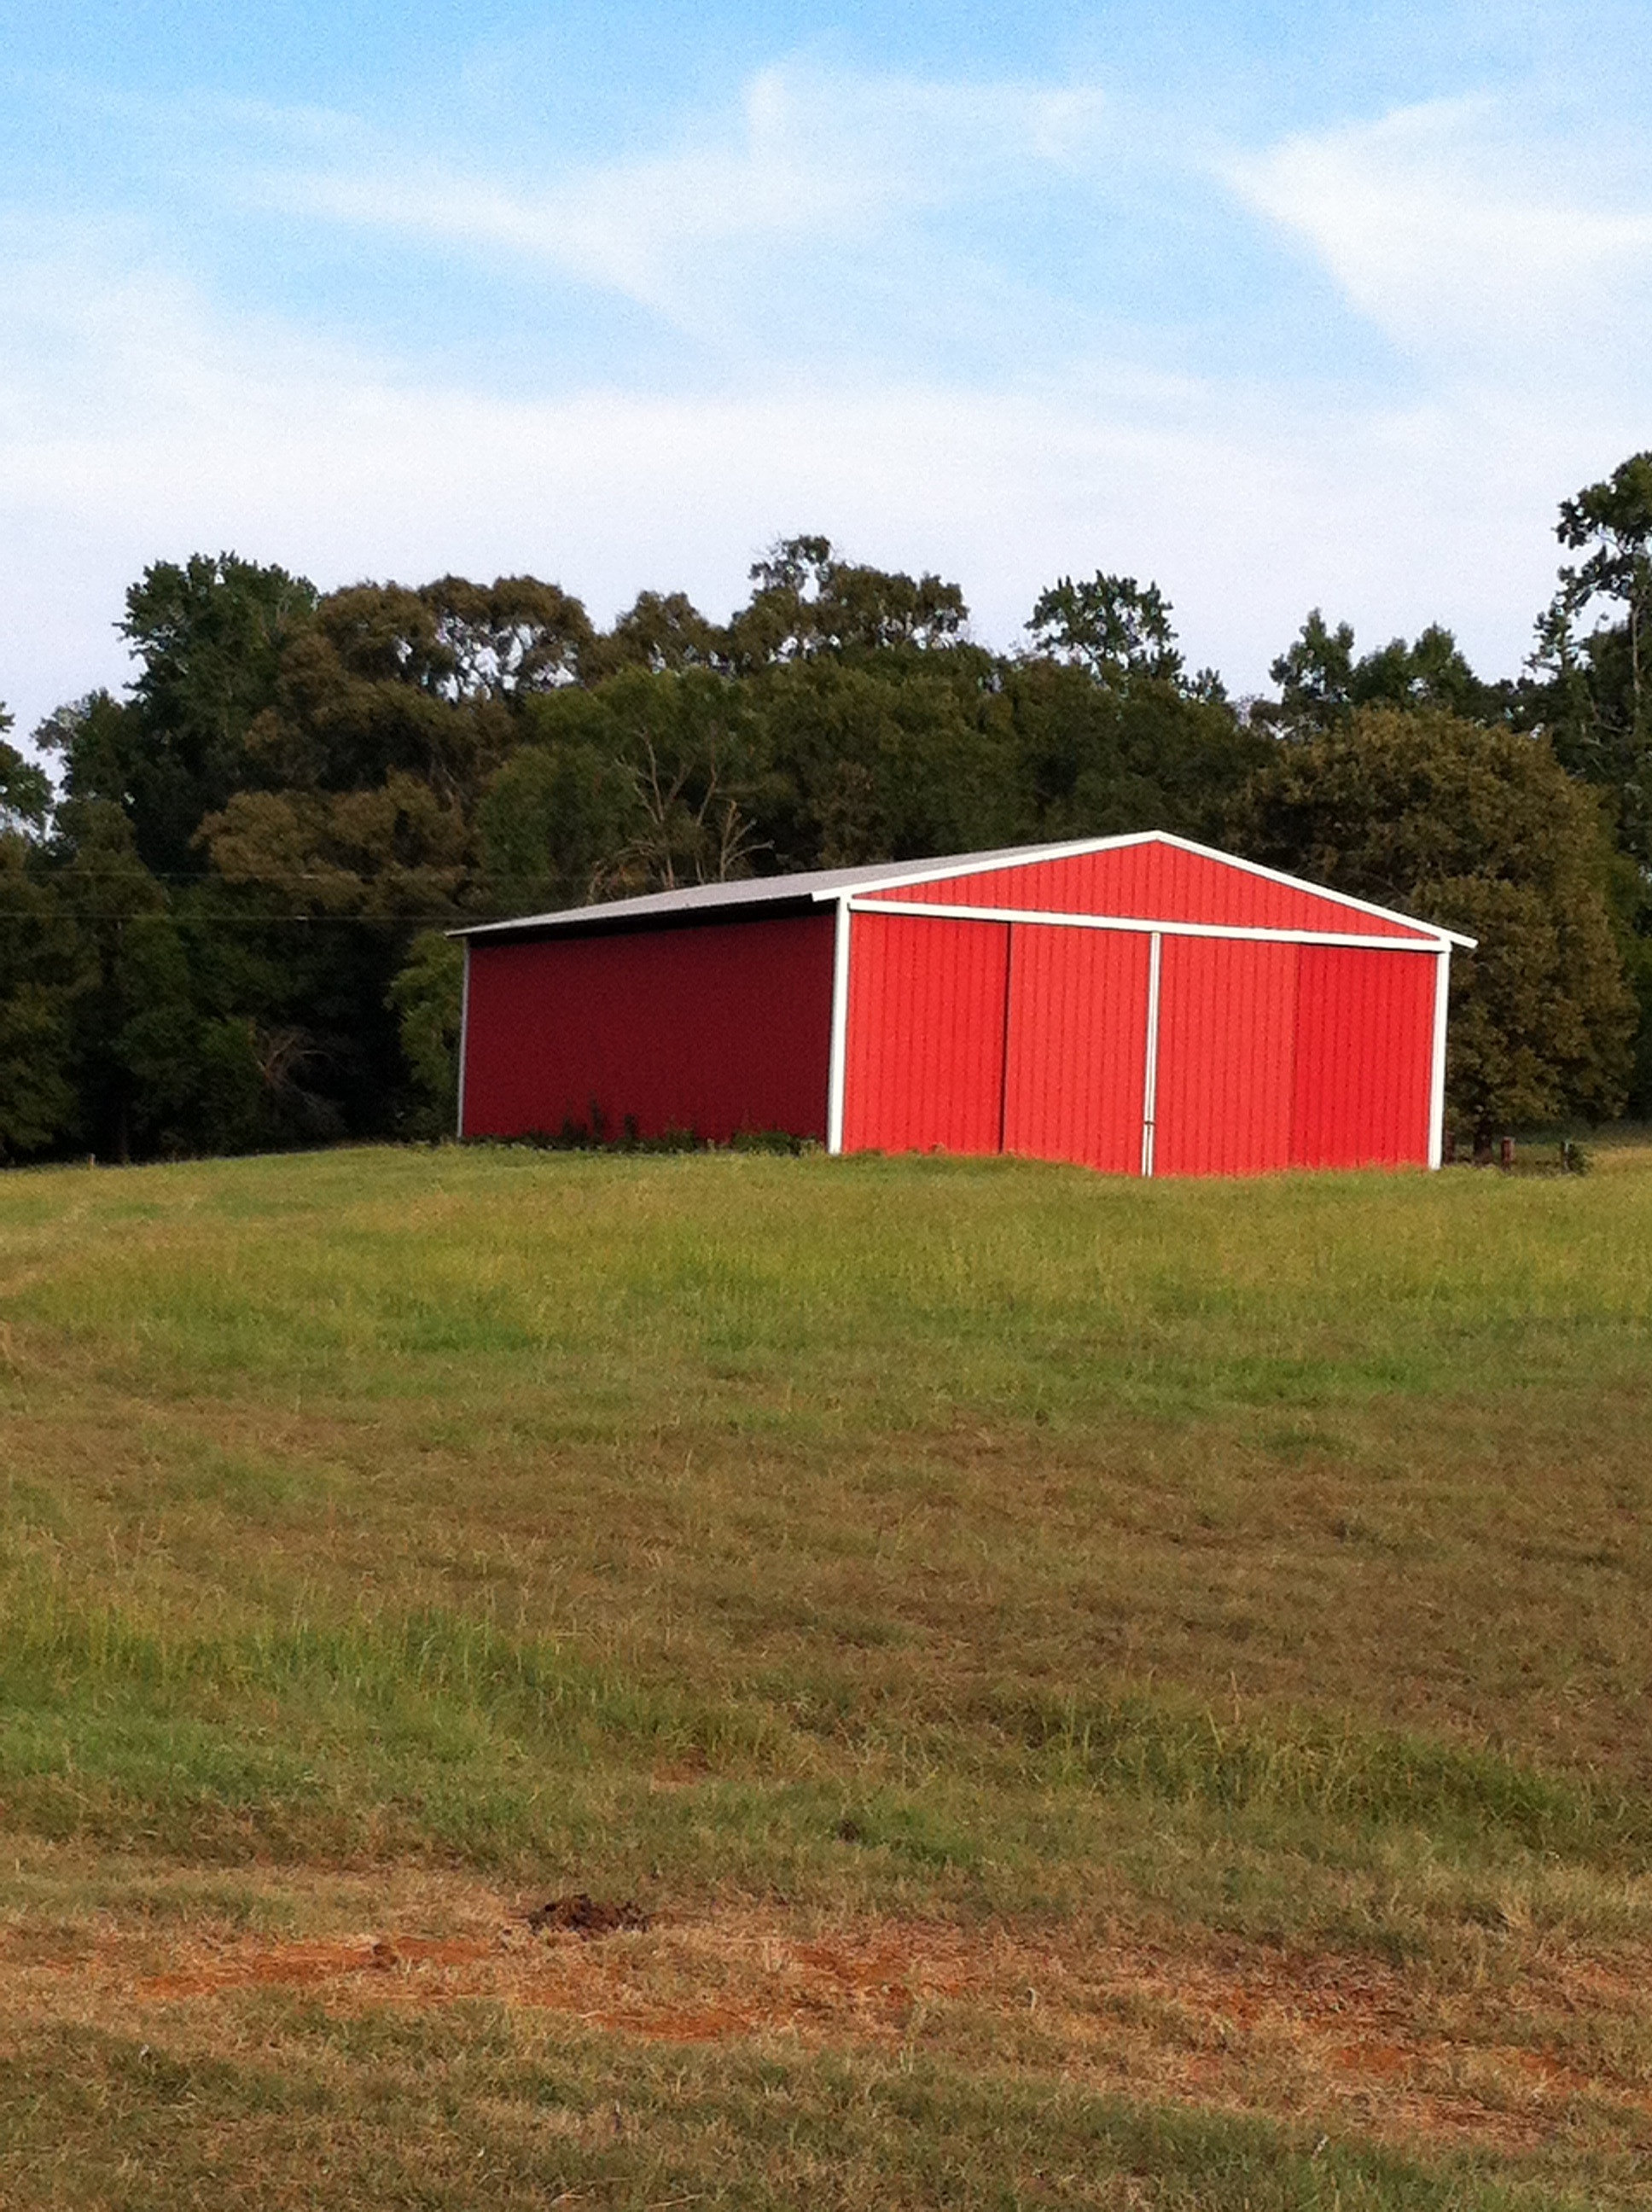 east texas land for sale ranch for sale east texas hay barn